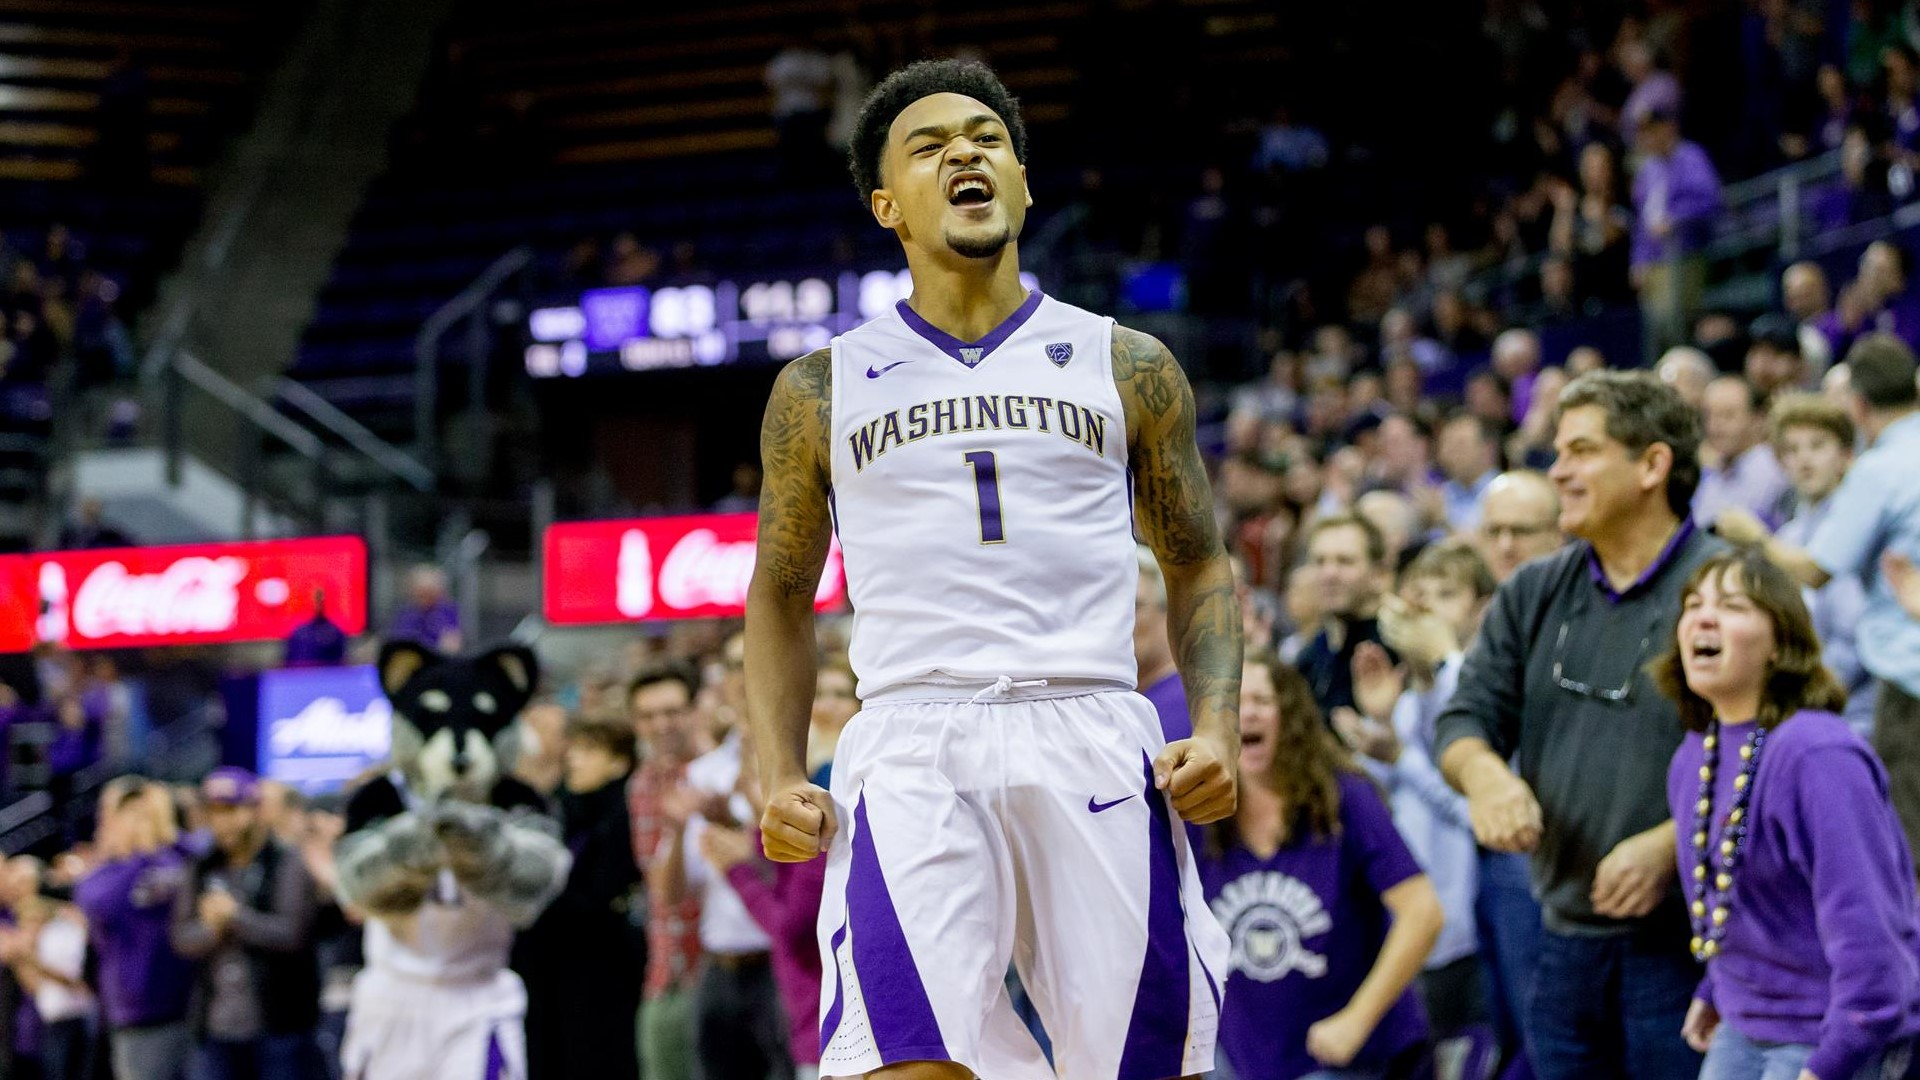 david crisp - men's basketball - university of washington athletics